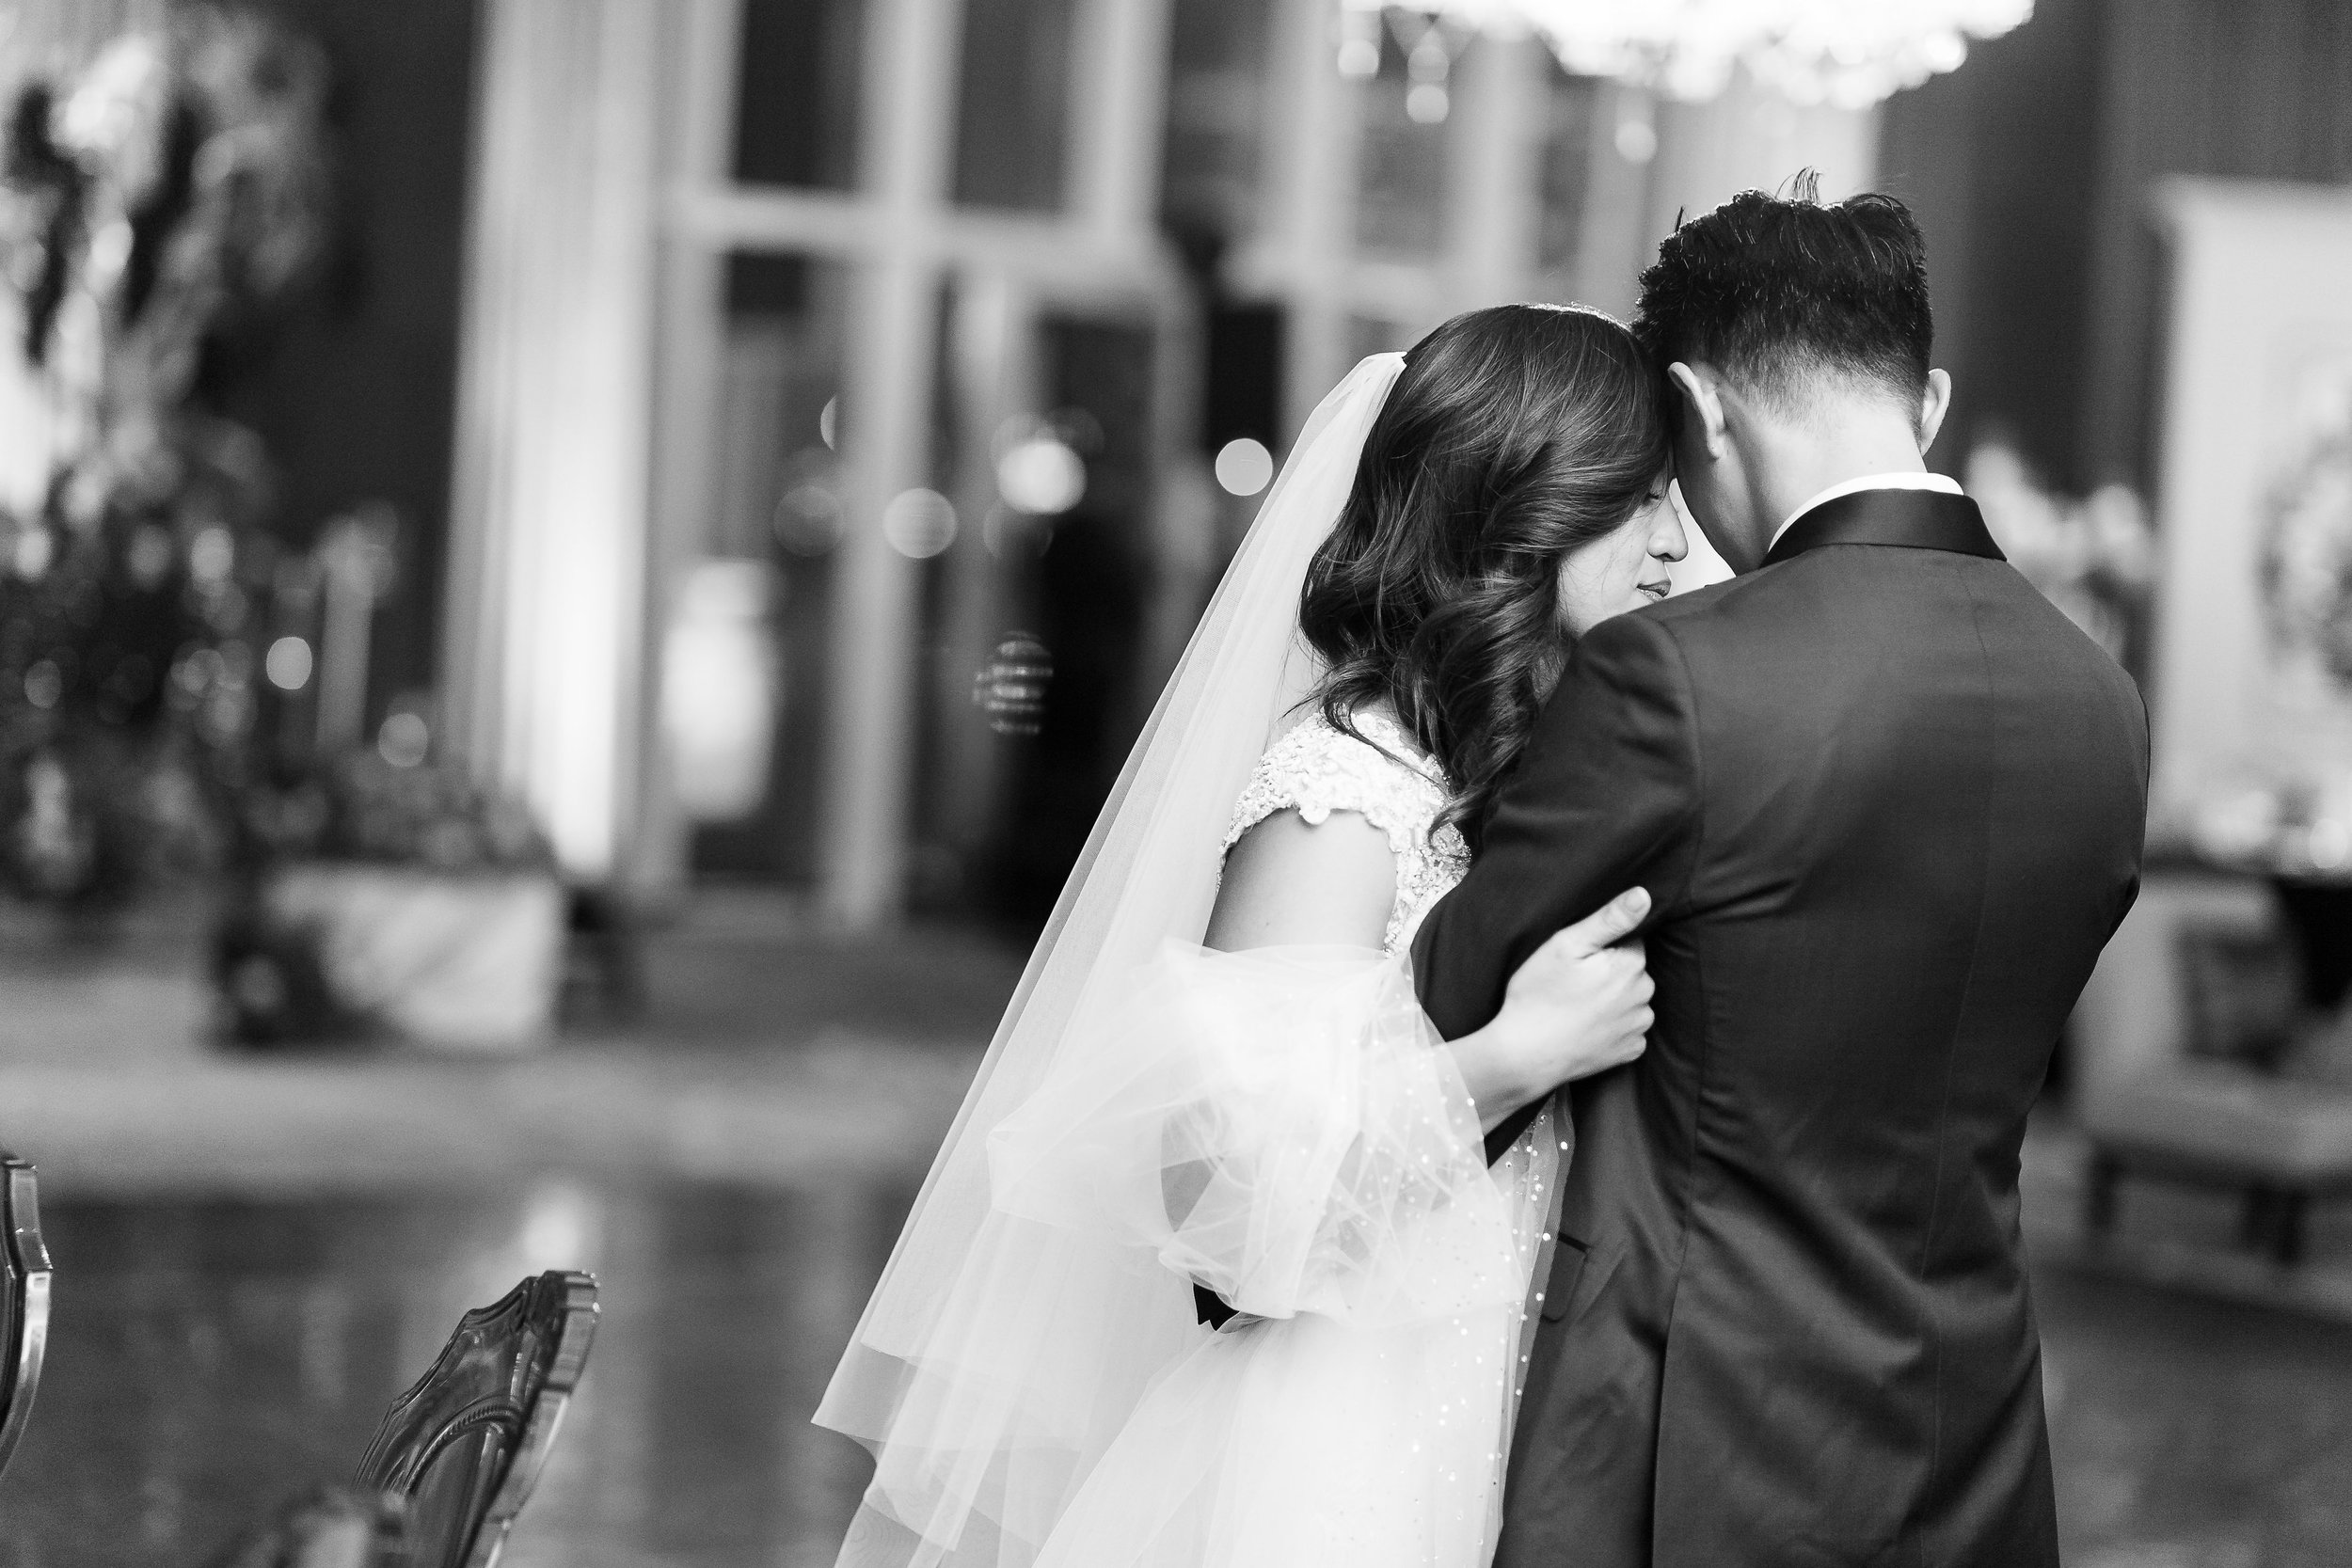 Black and white photo of couple's first dance in Las Vegas.  Wedding Planner: Andrea Eppolito Events    Photography  Brian Leahy    Videography  HOO Films    Venue & Catering:  Mandarin Oriental  / Waldorf Astoria   Floral & Decor: Destinations by Design    Lighting: LED Unplugged    Music:  DJ Breeze II    Hair & Make Up: Amelia C & Co